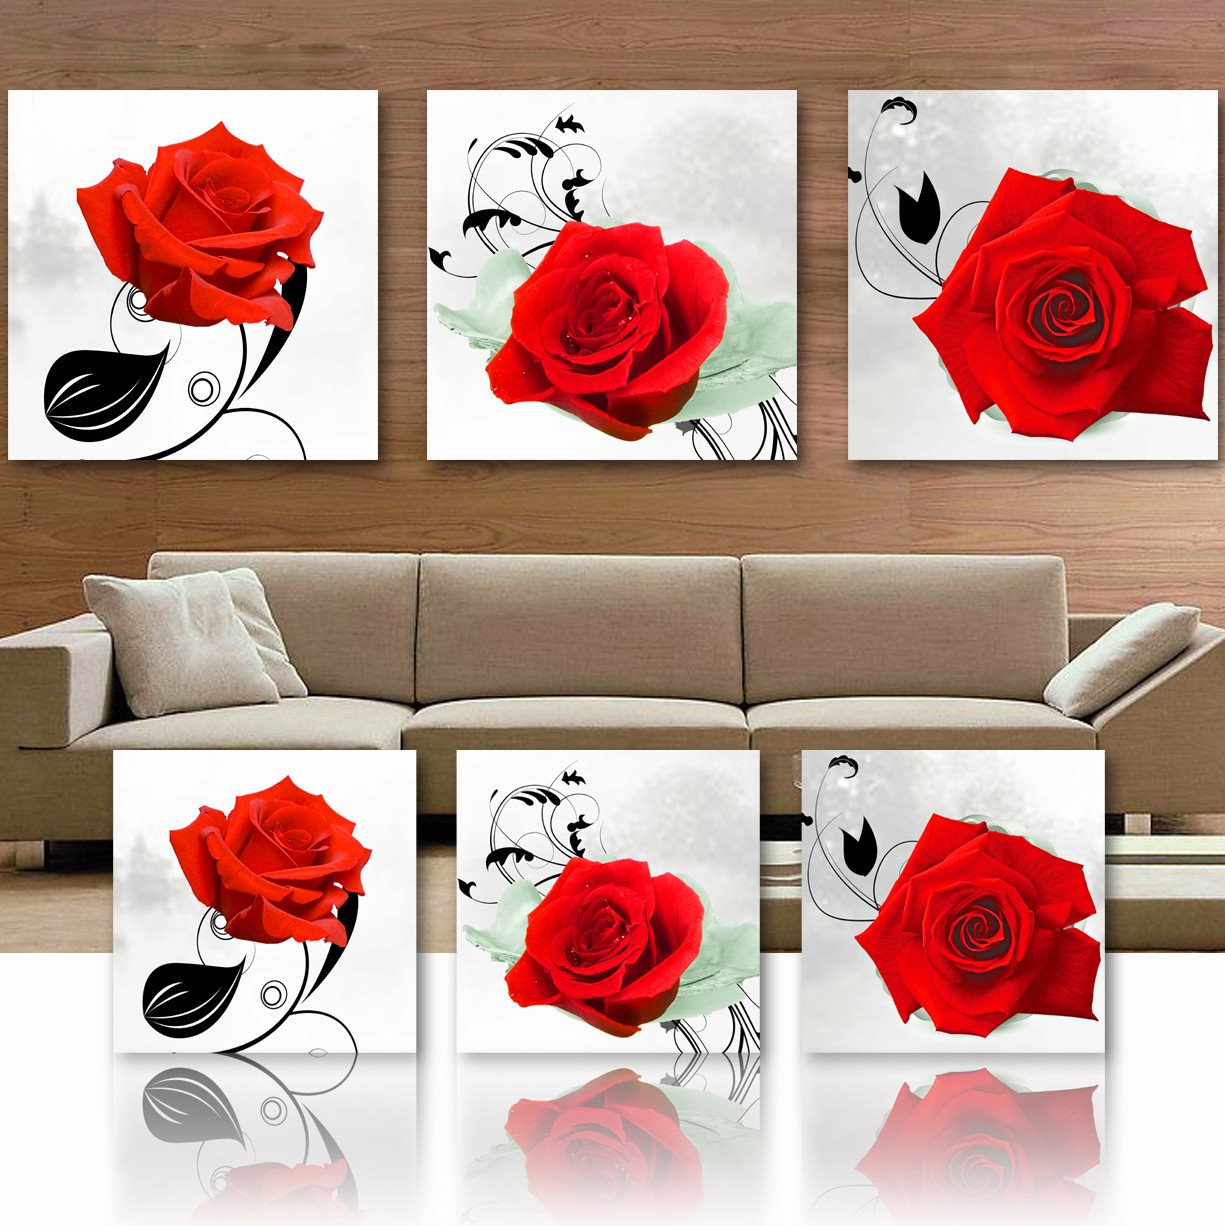 New Arrival Red Rose Blossom Film Art Wall Prints